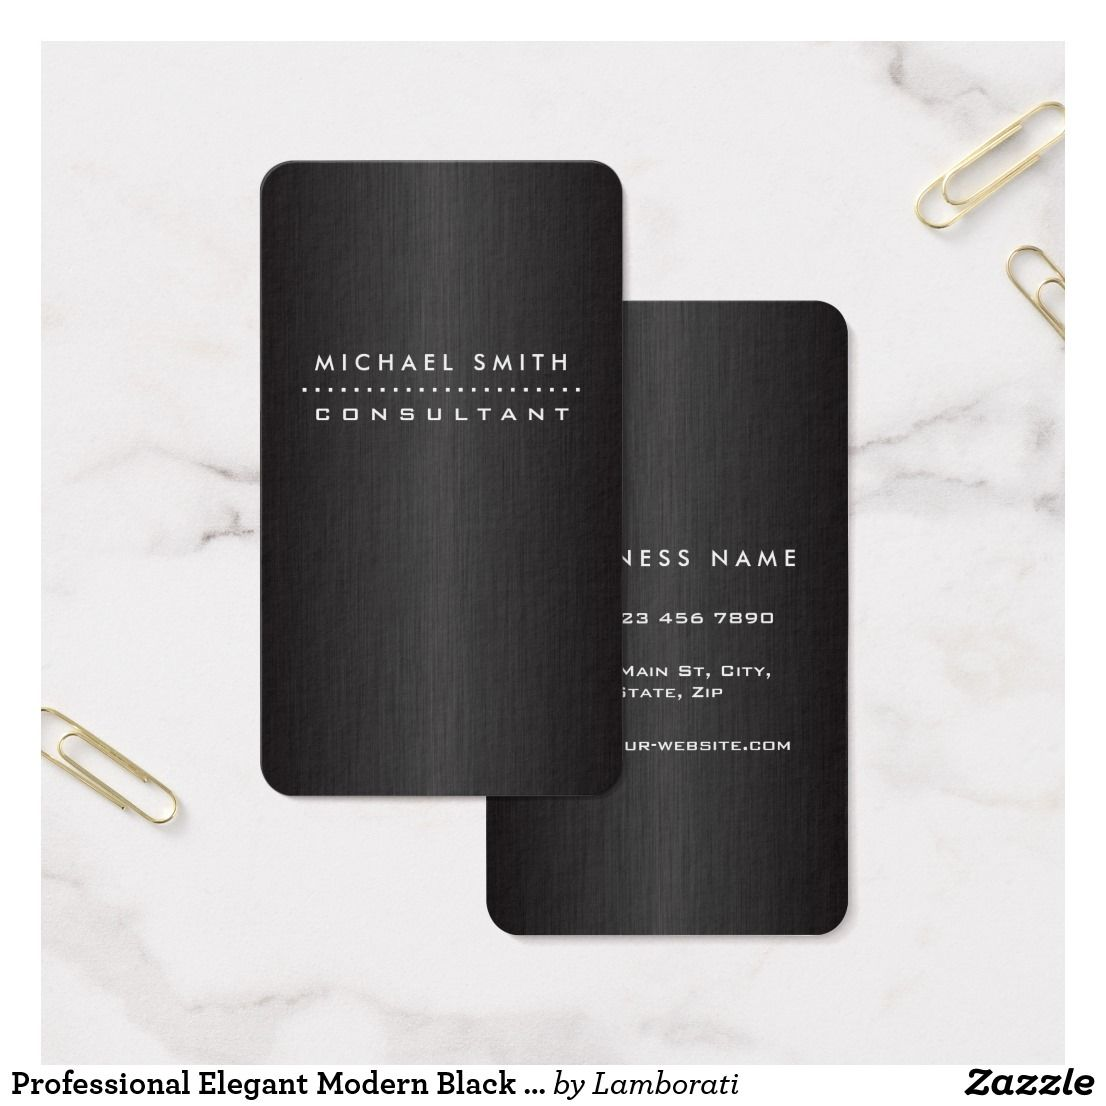 Professional elegant modern black brushed metal business card professional elegant modern black brushed metal business card colourmoves